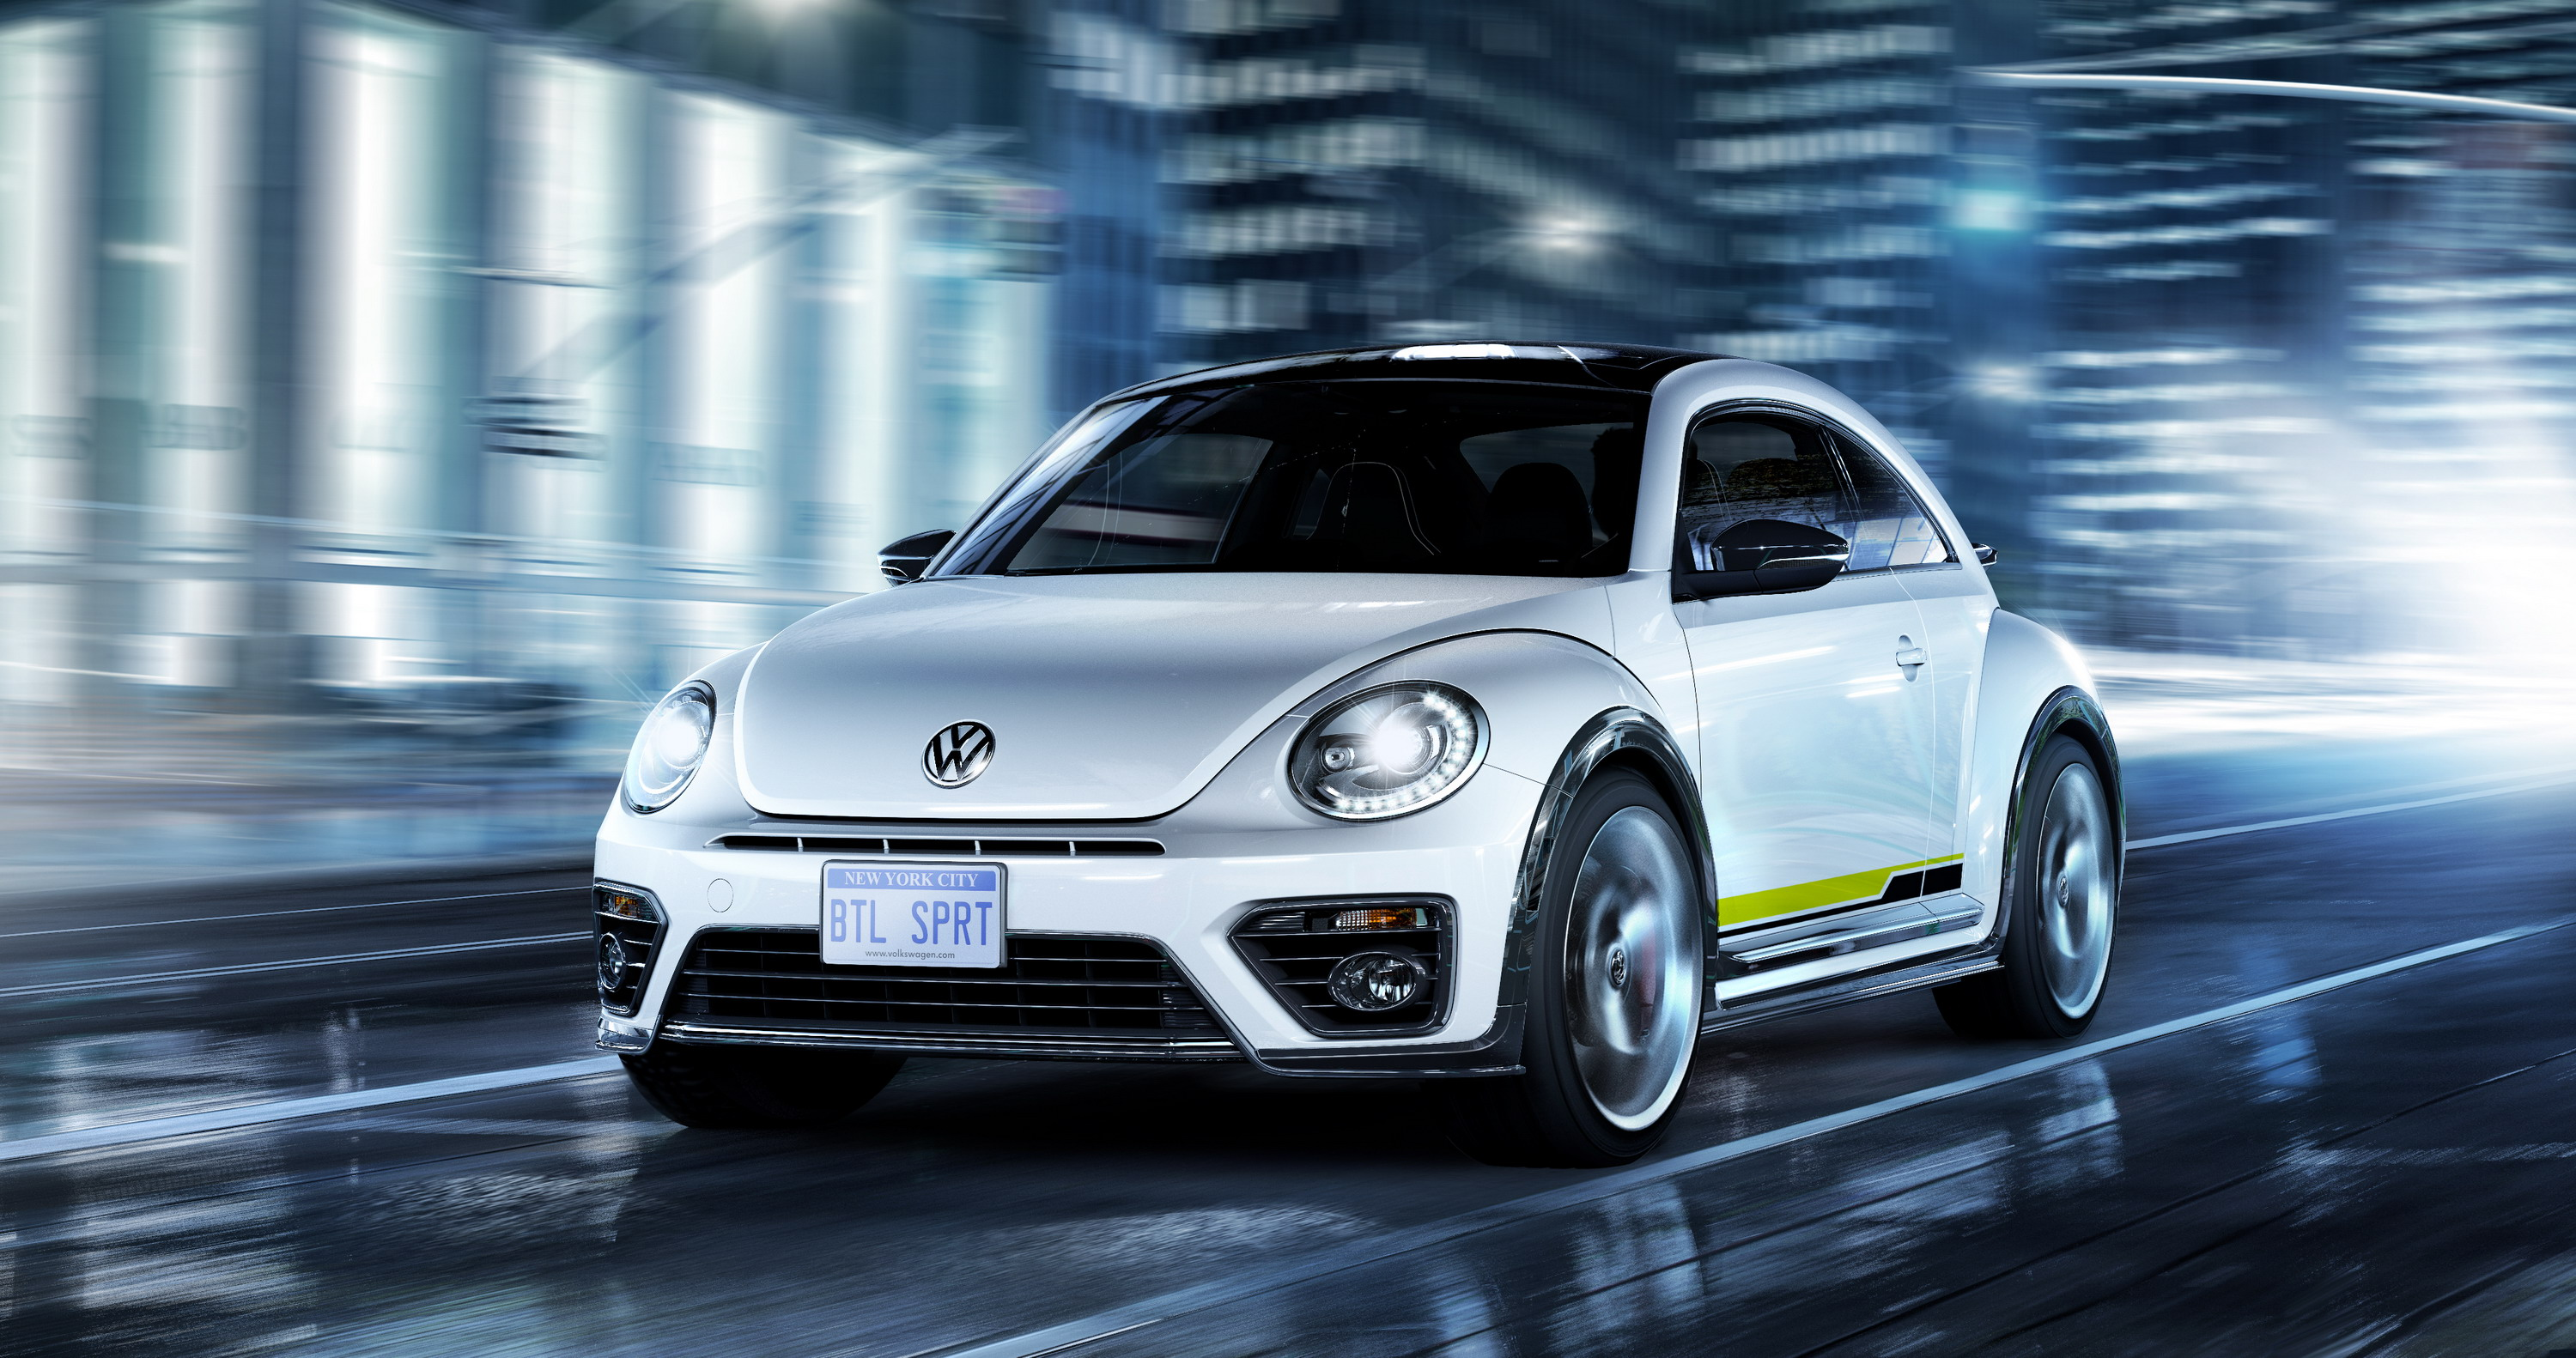 dune com the unveils auto beetle north concept volkswagen show american buggy at international